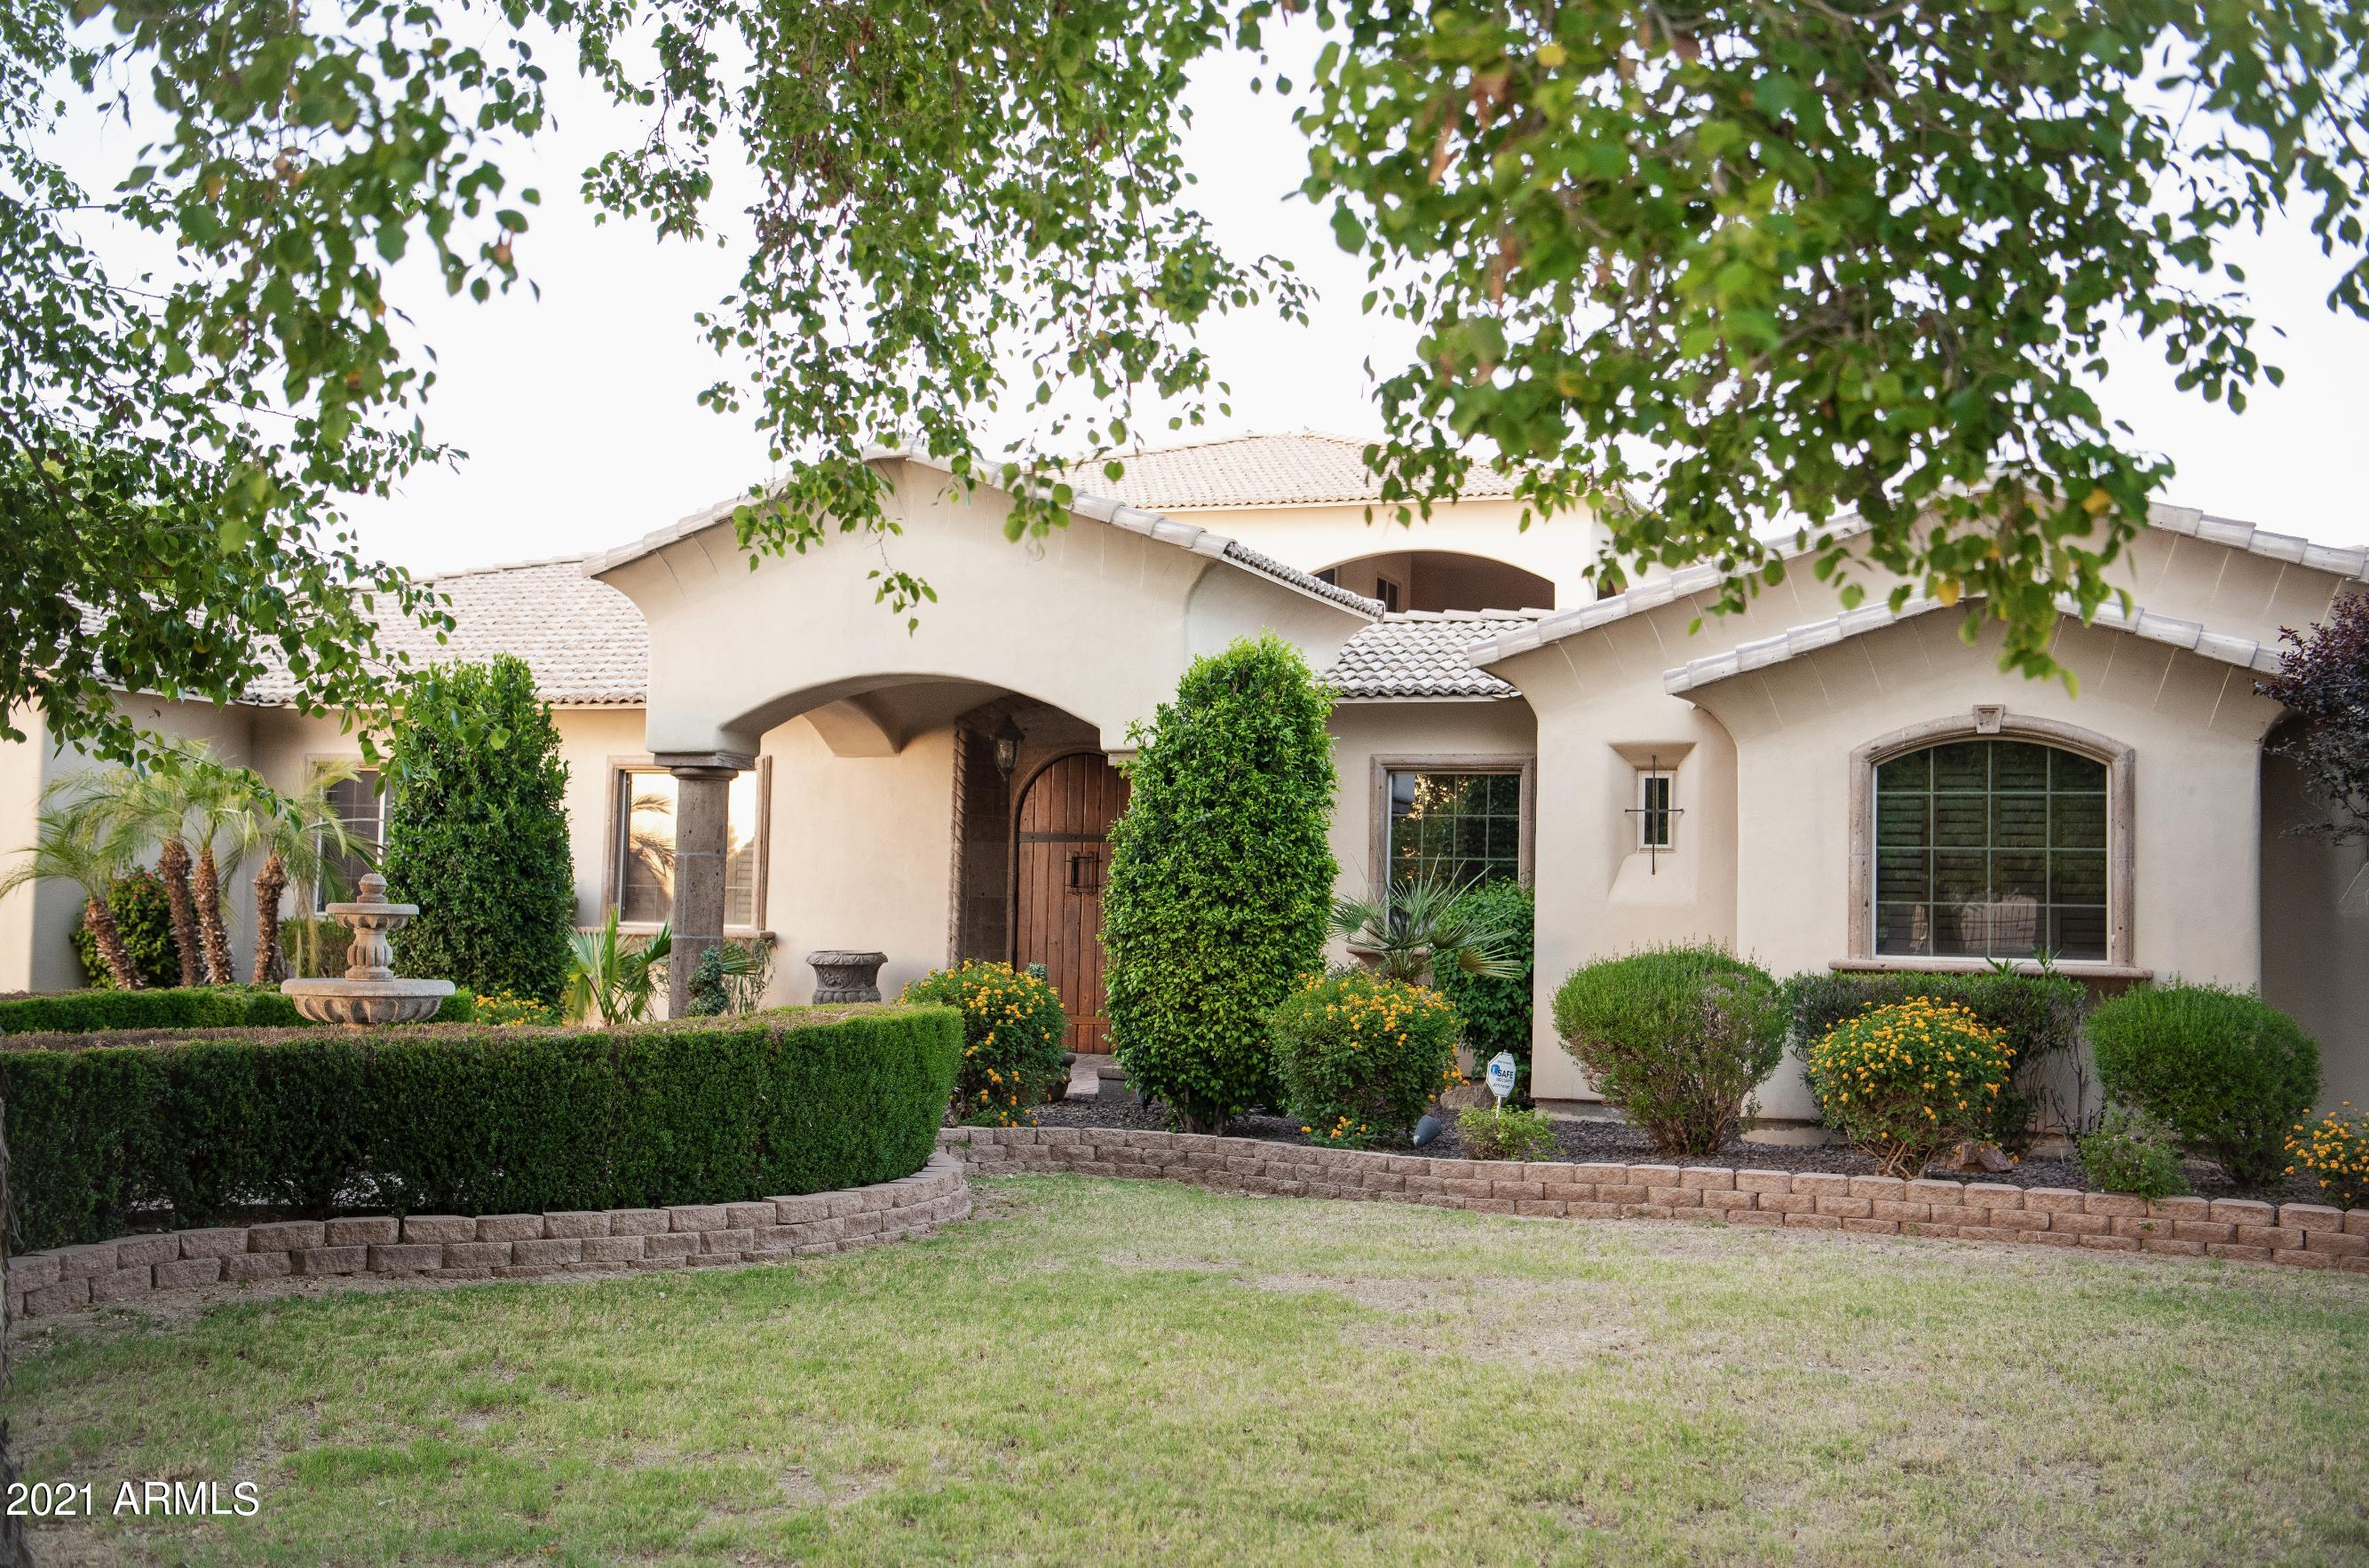 10105 S 159TH Street, Gilbert, AZ 85234, 5 Bedrooms Bedrooms, ,Residential Lease,For Rent,10105 S 159TH Street,6247504